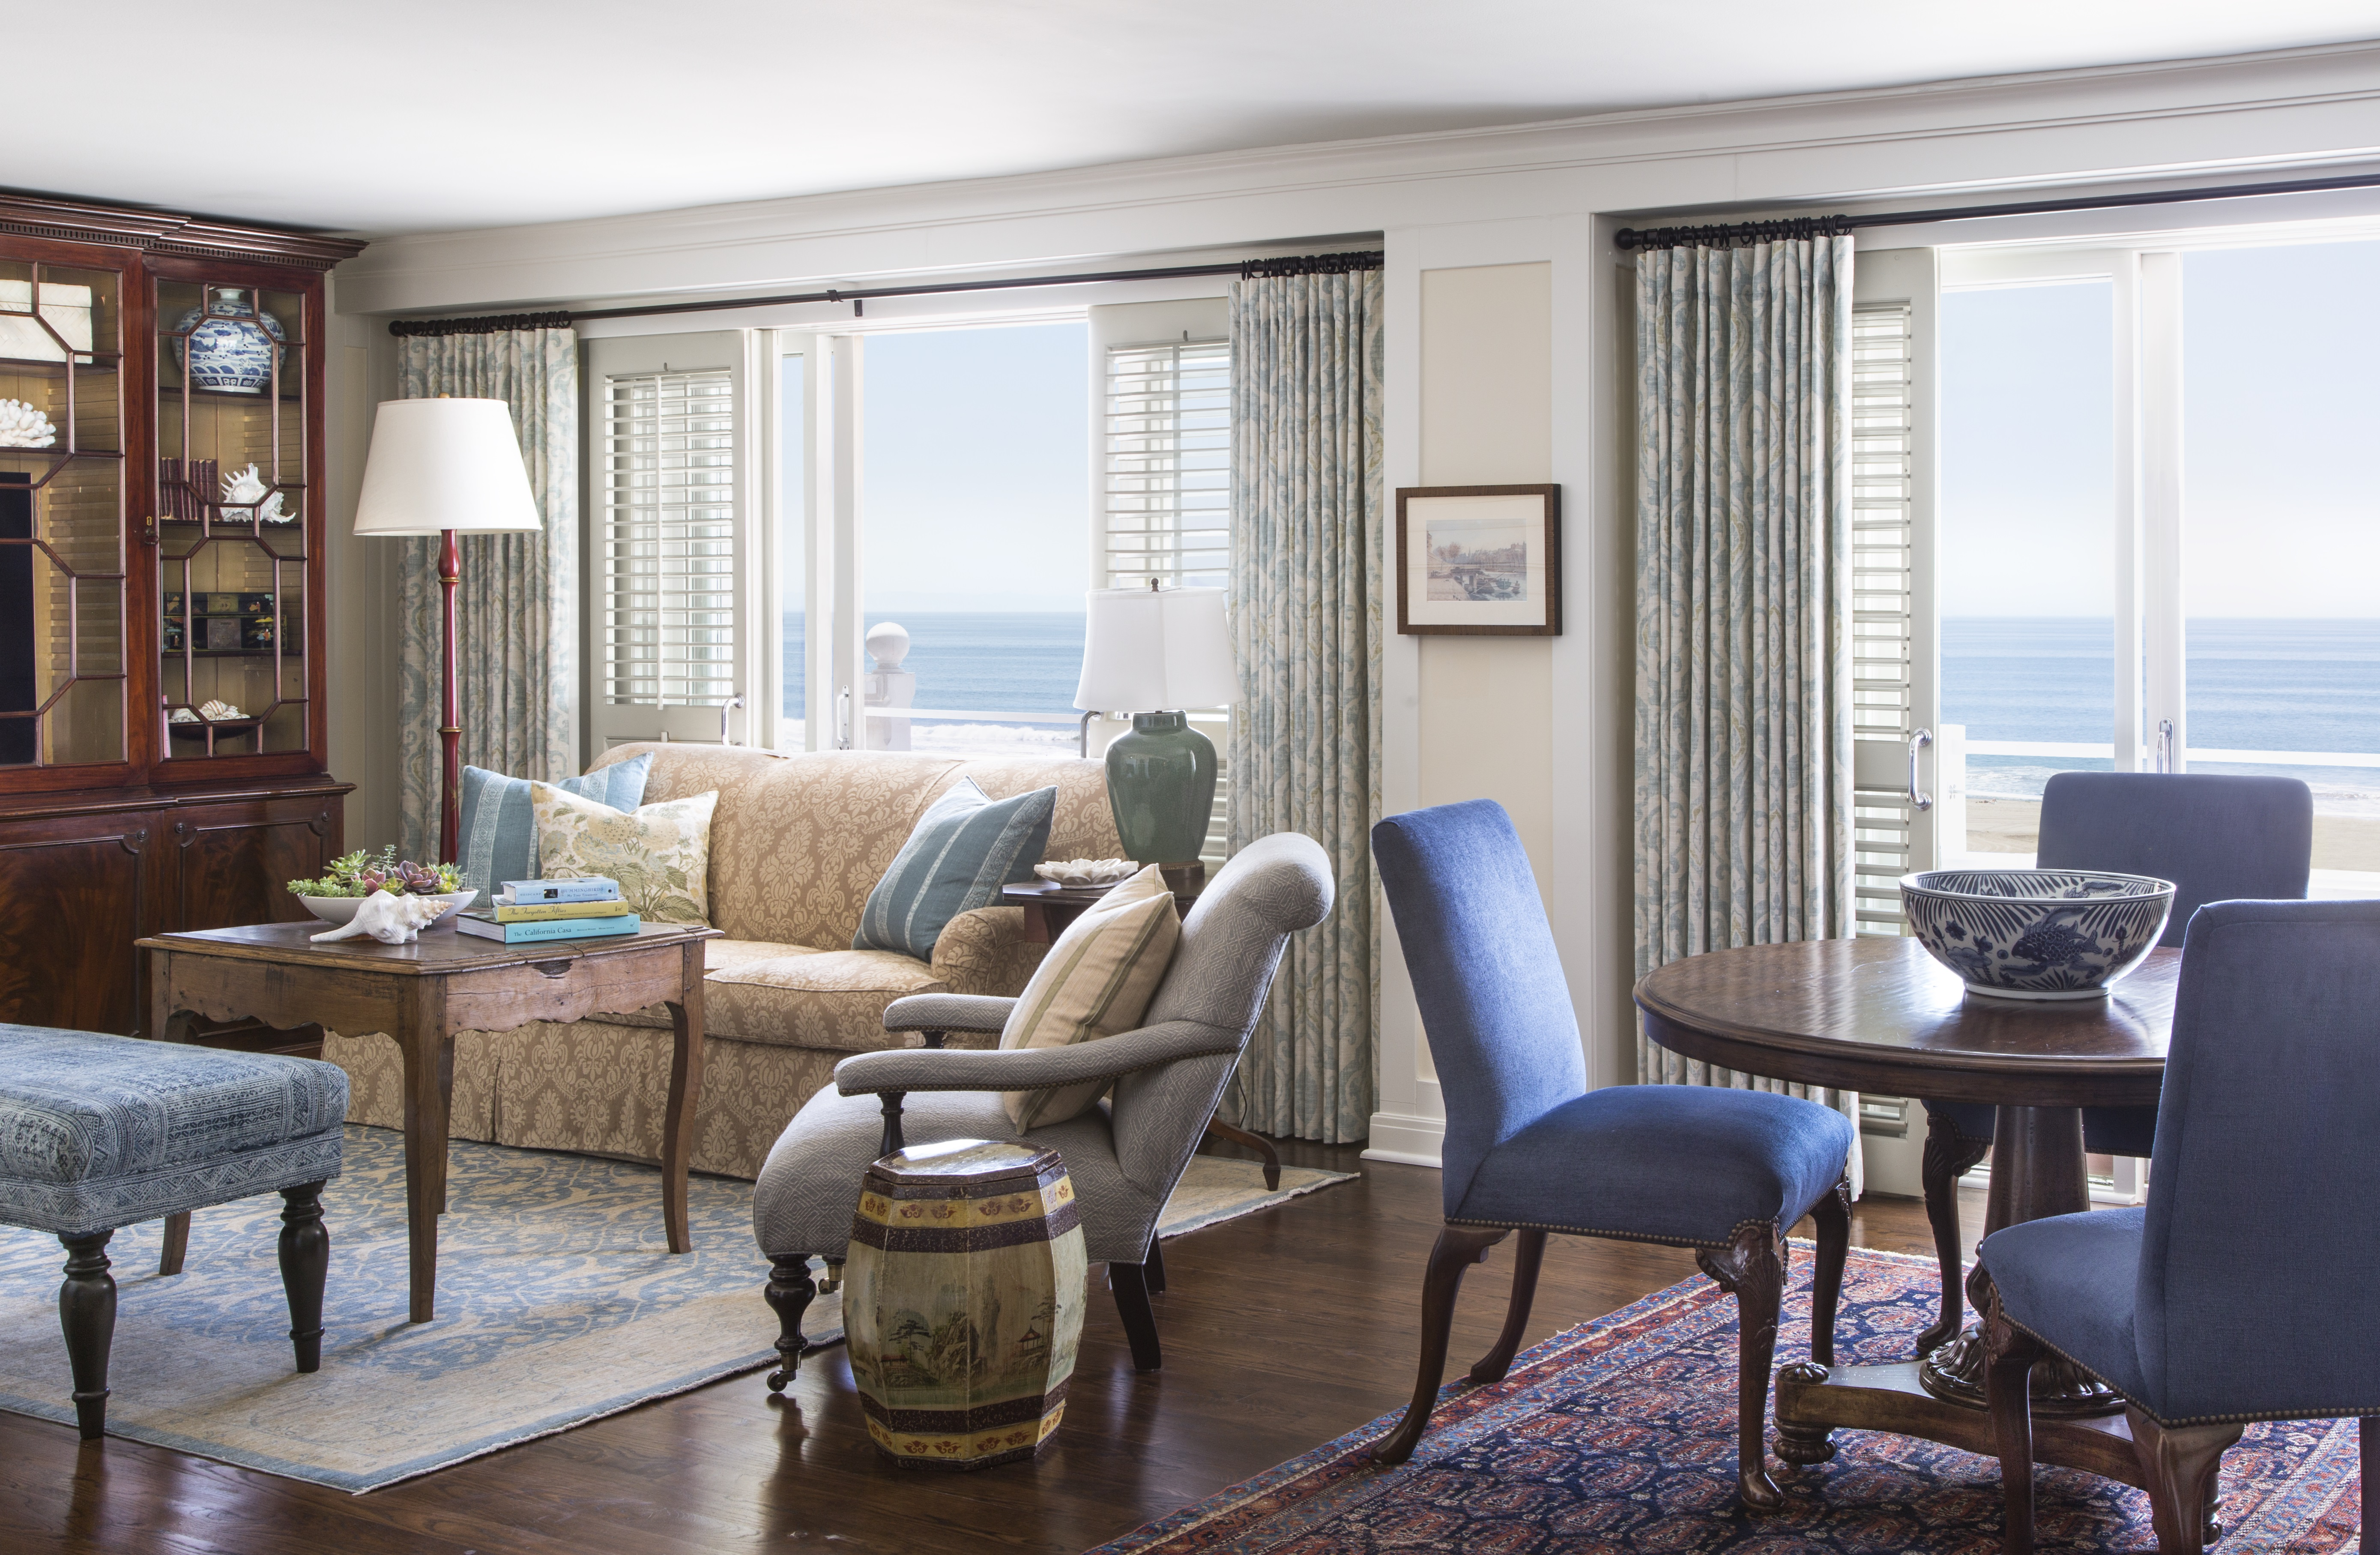 living room shutters. Santa Monica Hotel  Luxury Beach The Iconic Shutters on the